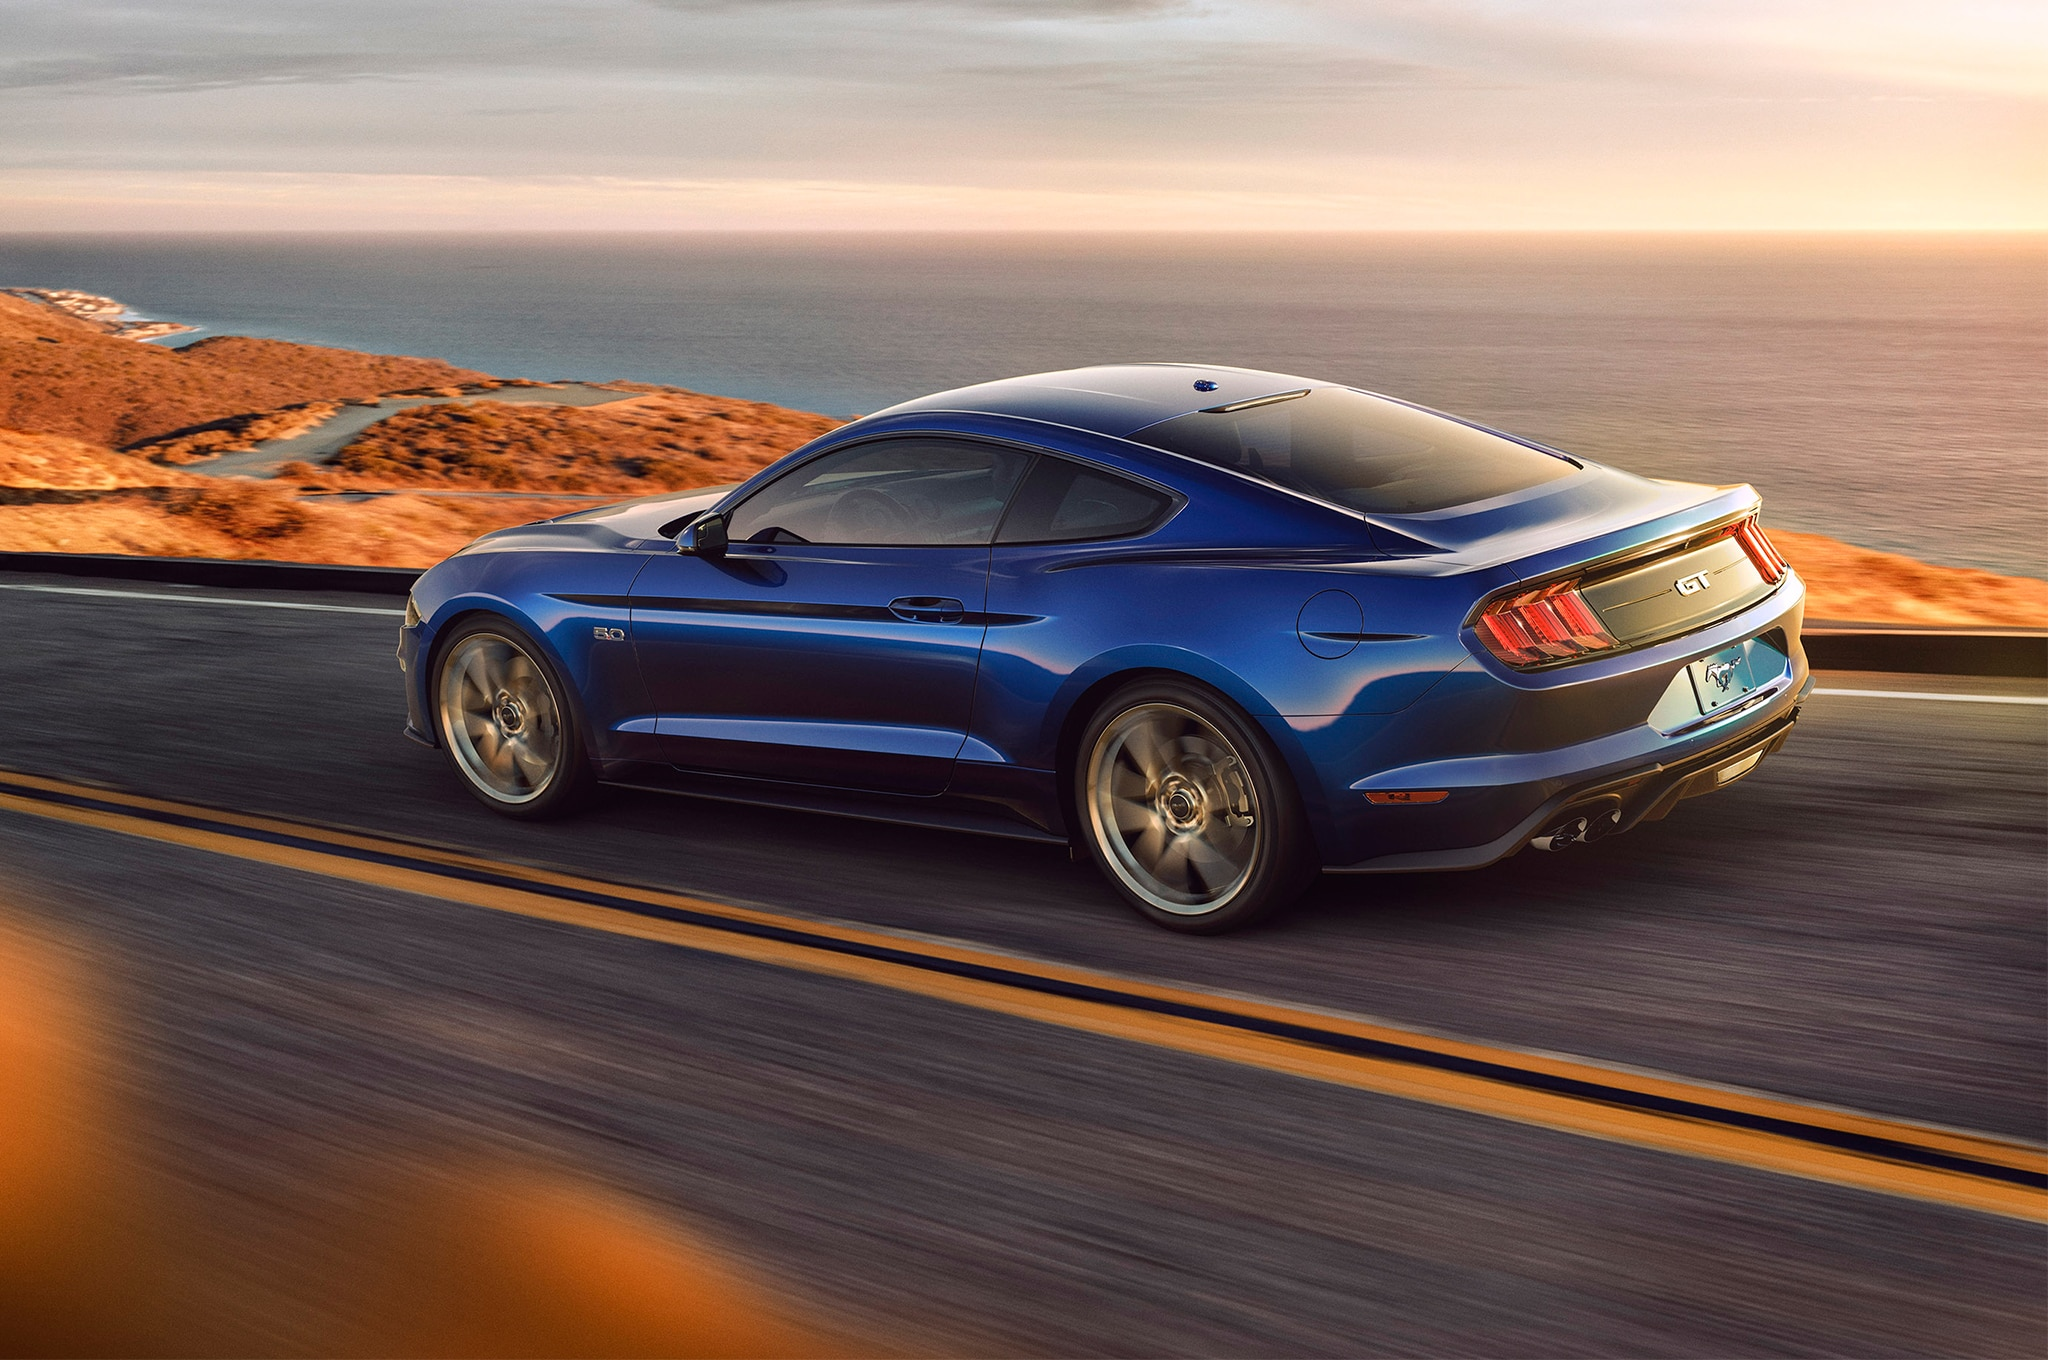 Ford Mustang GT gets a 'Good Neighbor Mode'